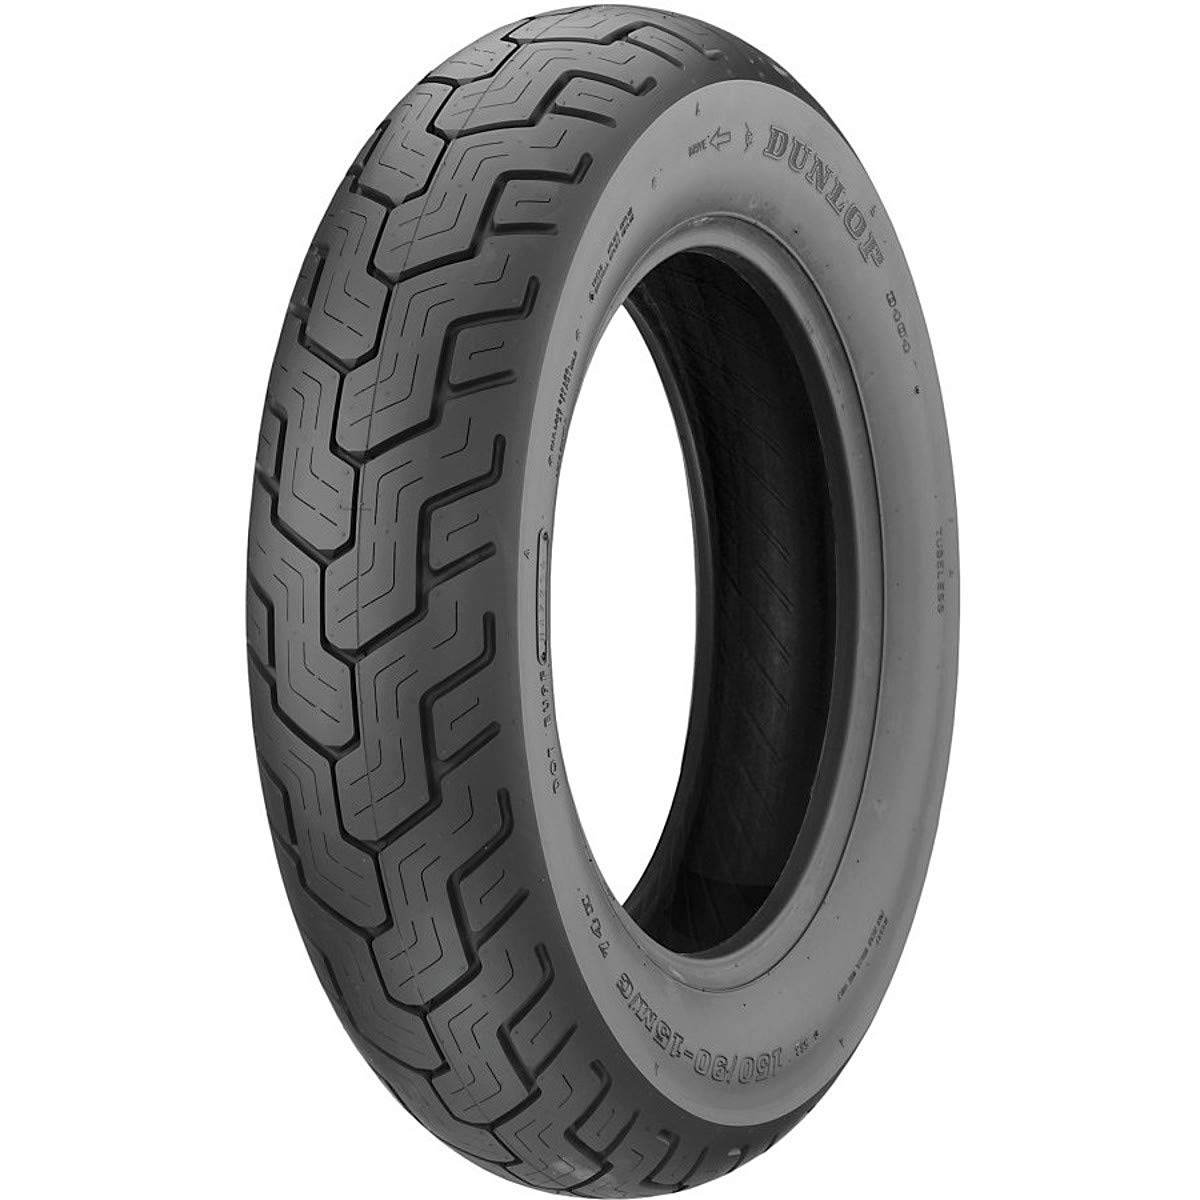 Dunlop D404 Rear Motorcycle Tire 150/80B-16 (71H) Black Wall